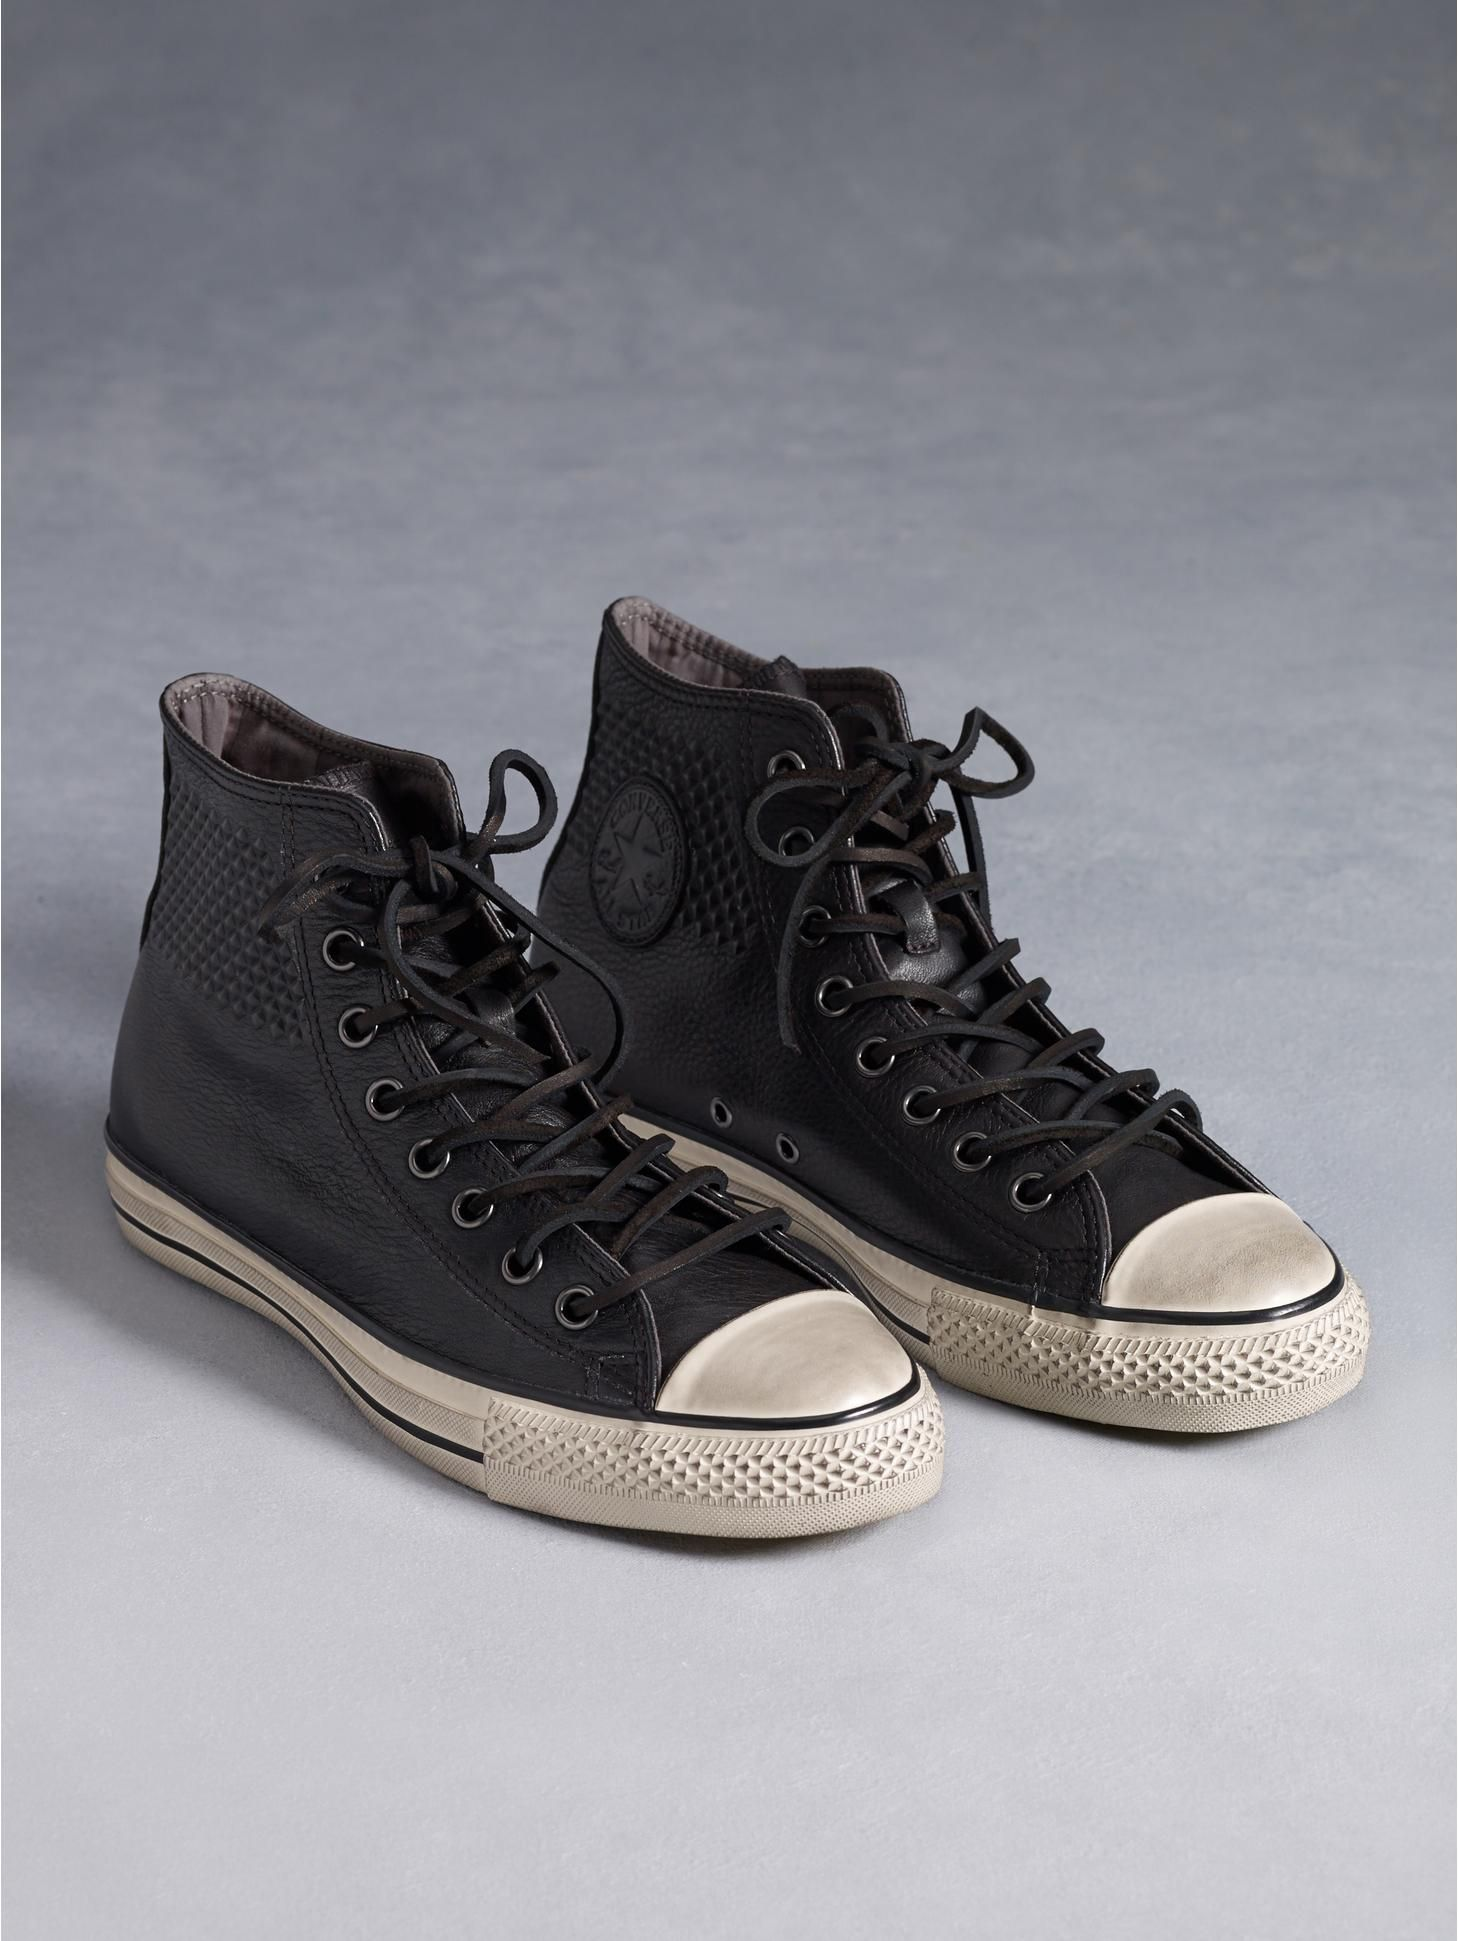 6baa2844da1b Converse by John Varvatos Chuck Taylor All-Star Embossed Leather Chuck  Taylor Hi-Top Shoes